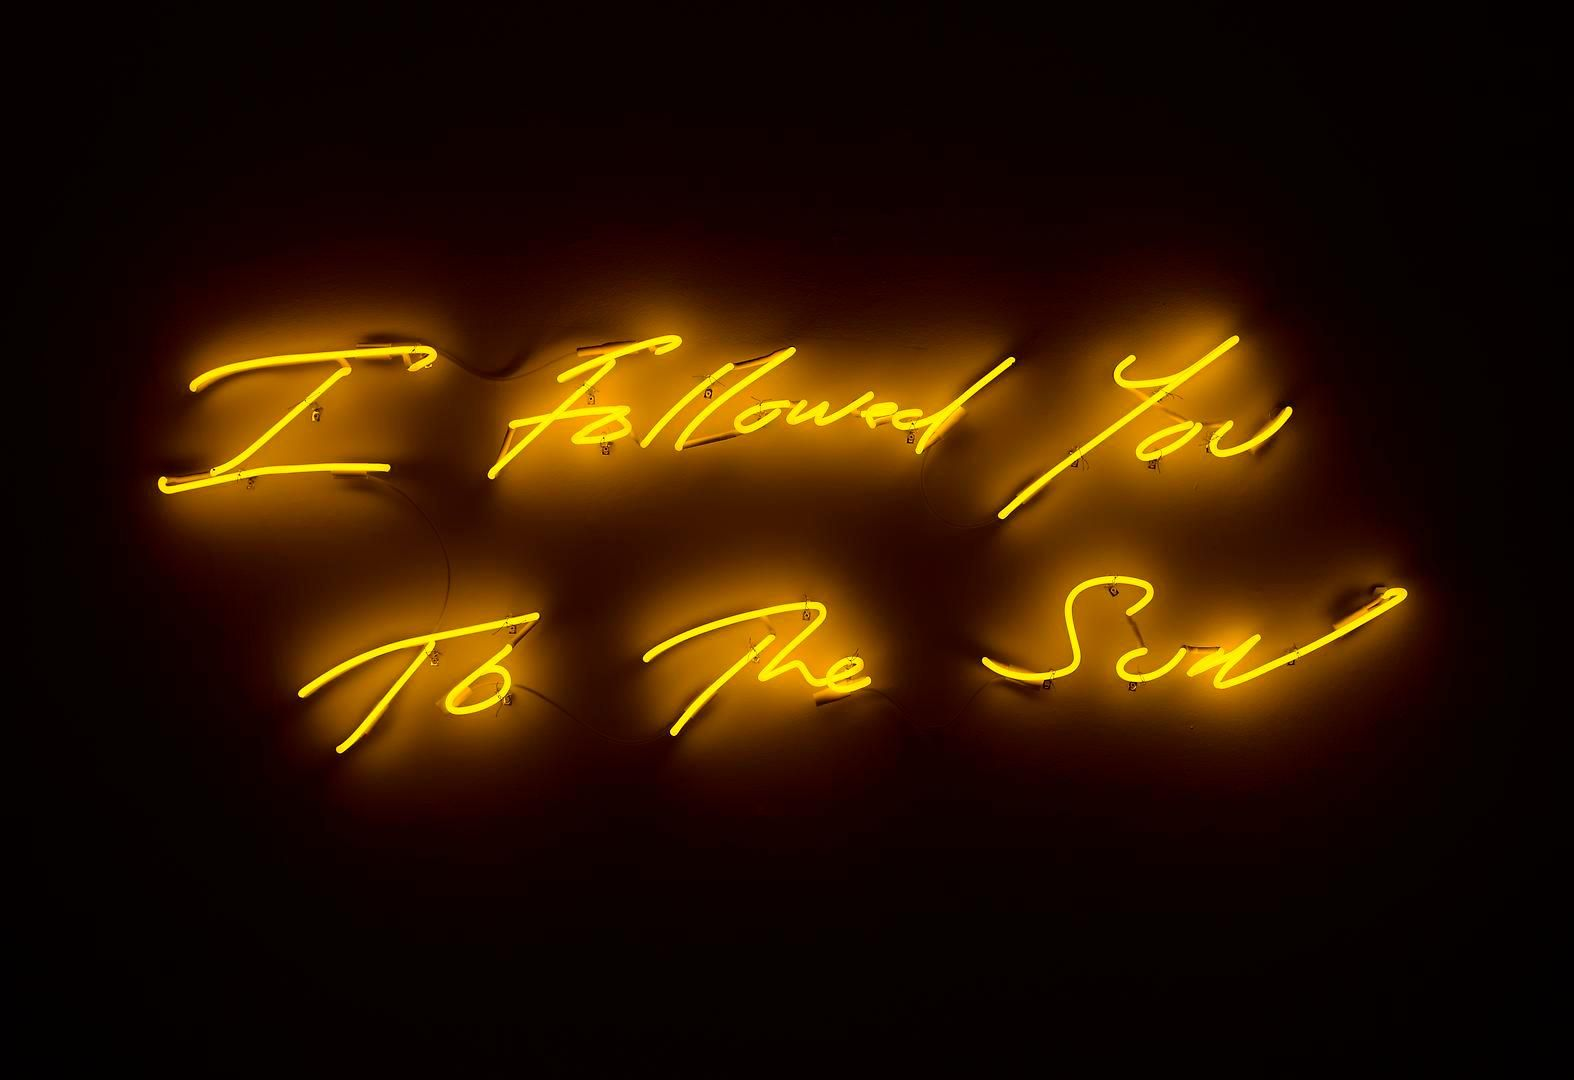 TRACEY EMIN I Followed You to The Sun, 2013